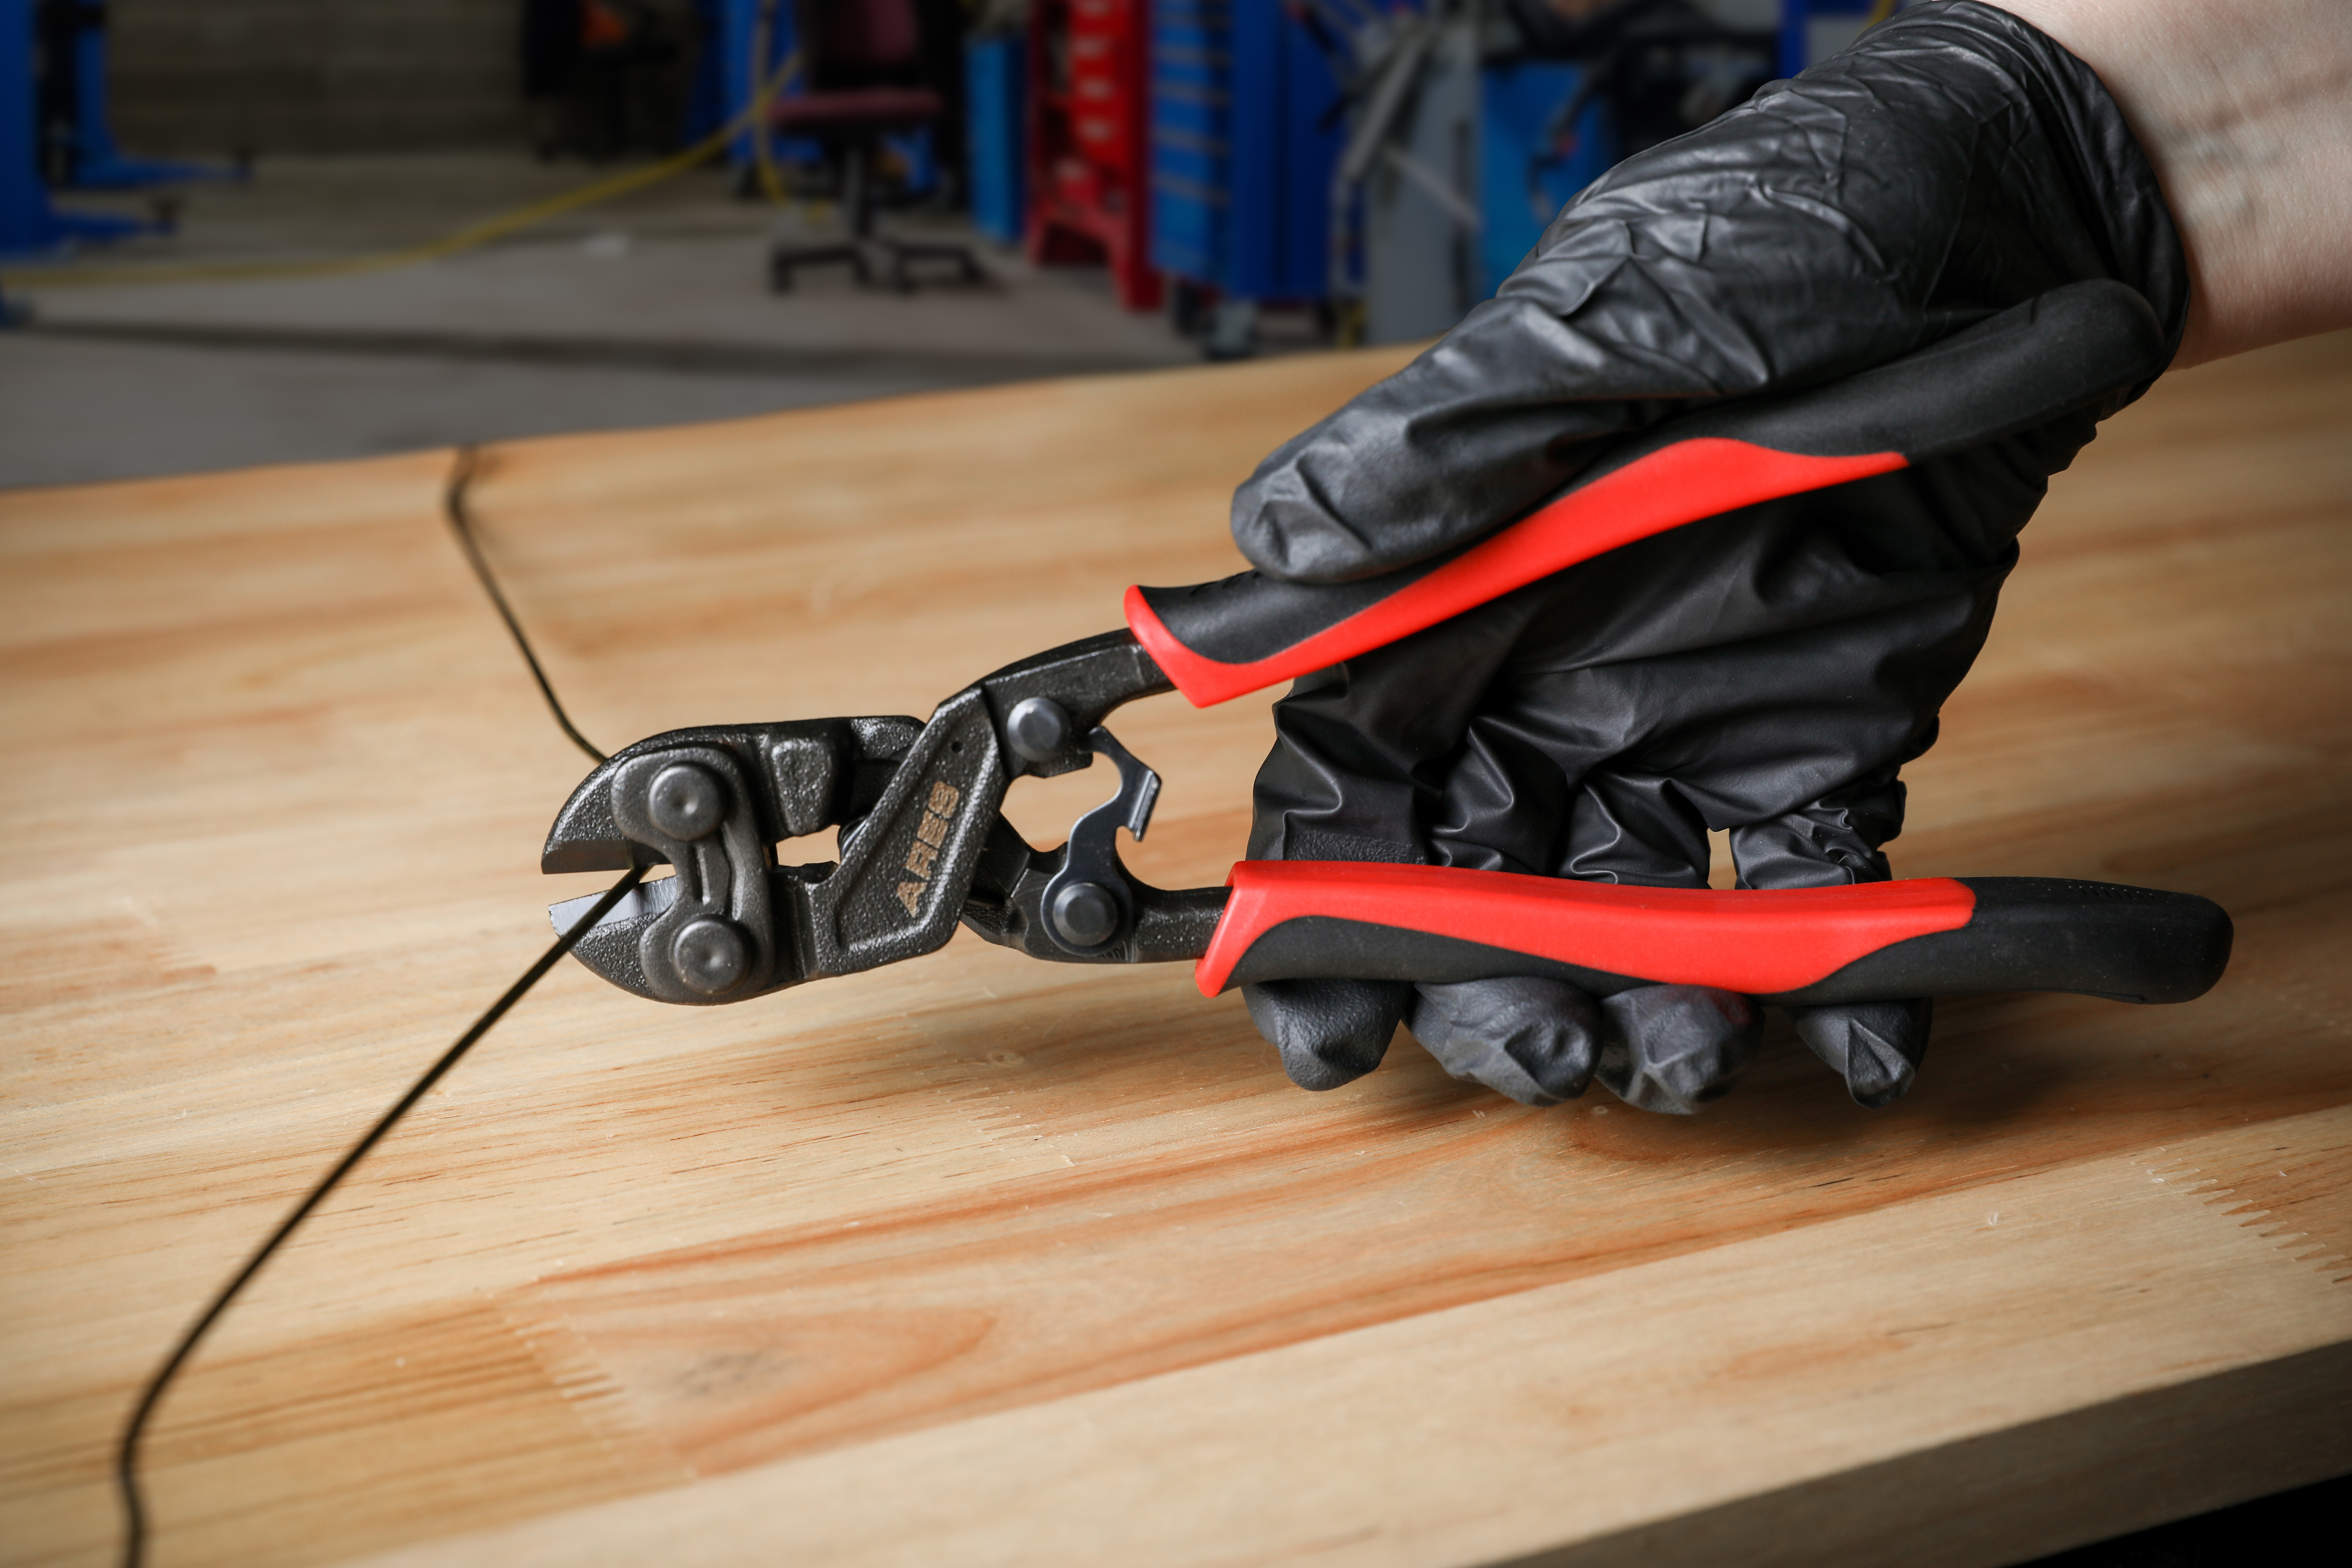 ARES Eight-Inch Mini Bolt Cutter